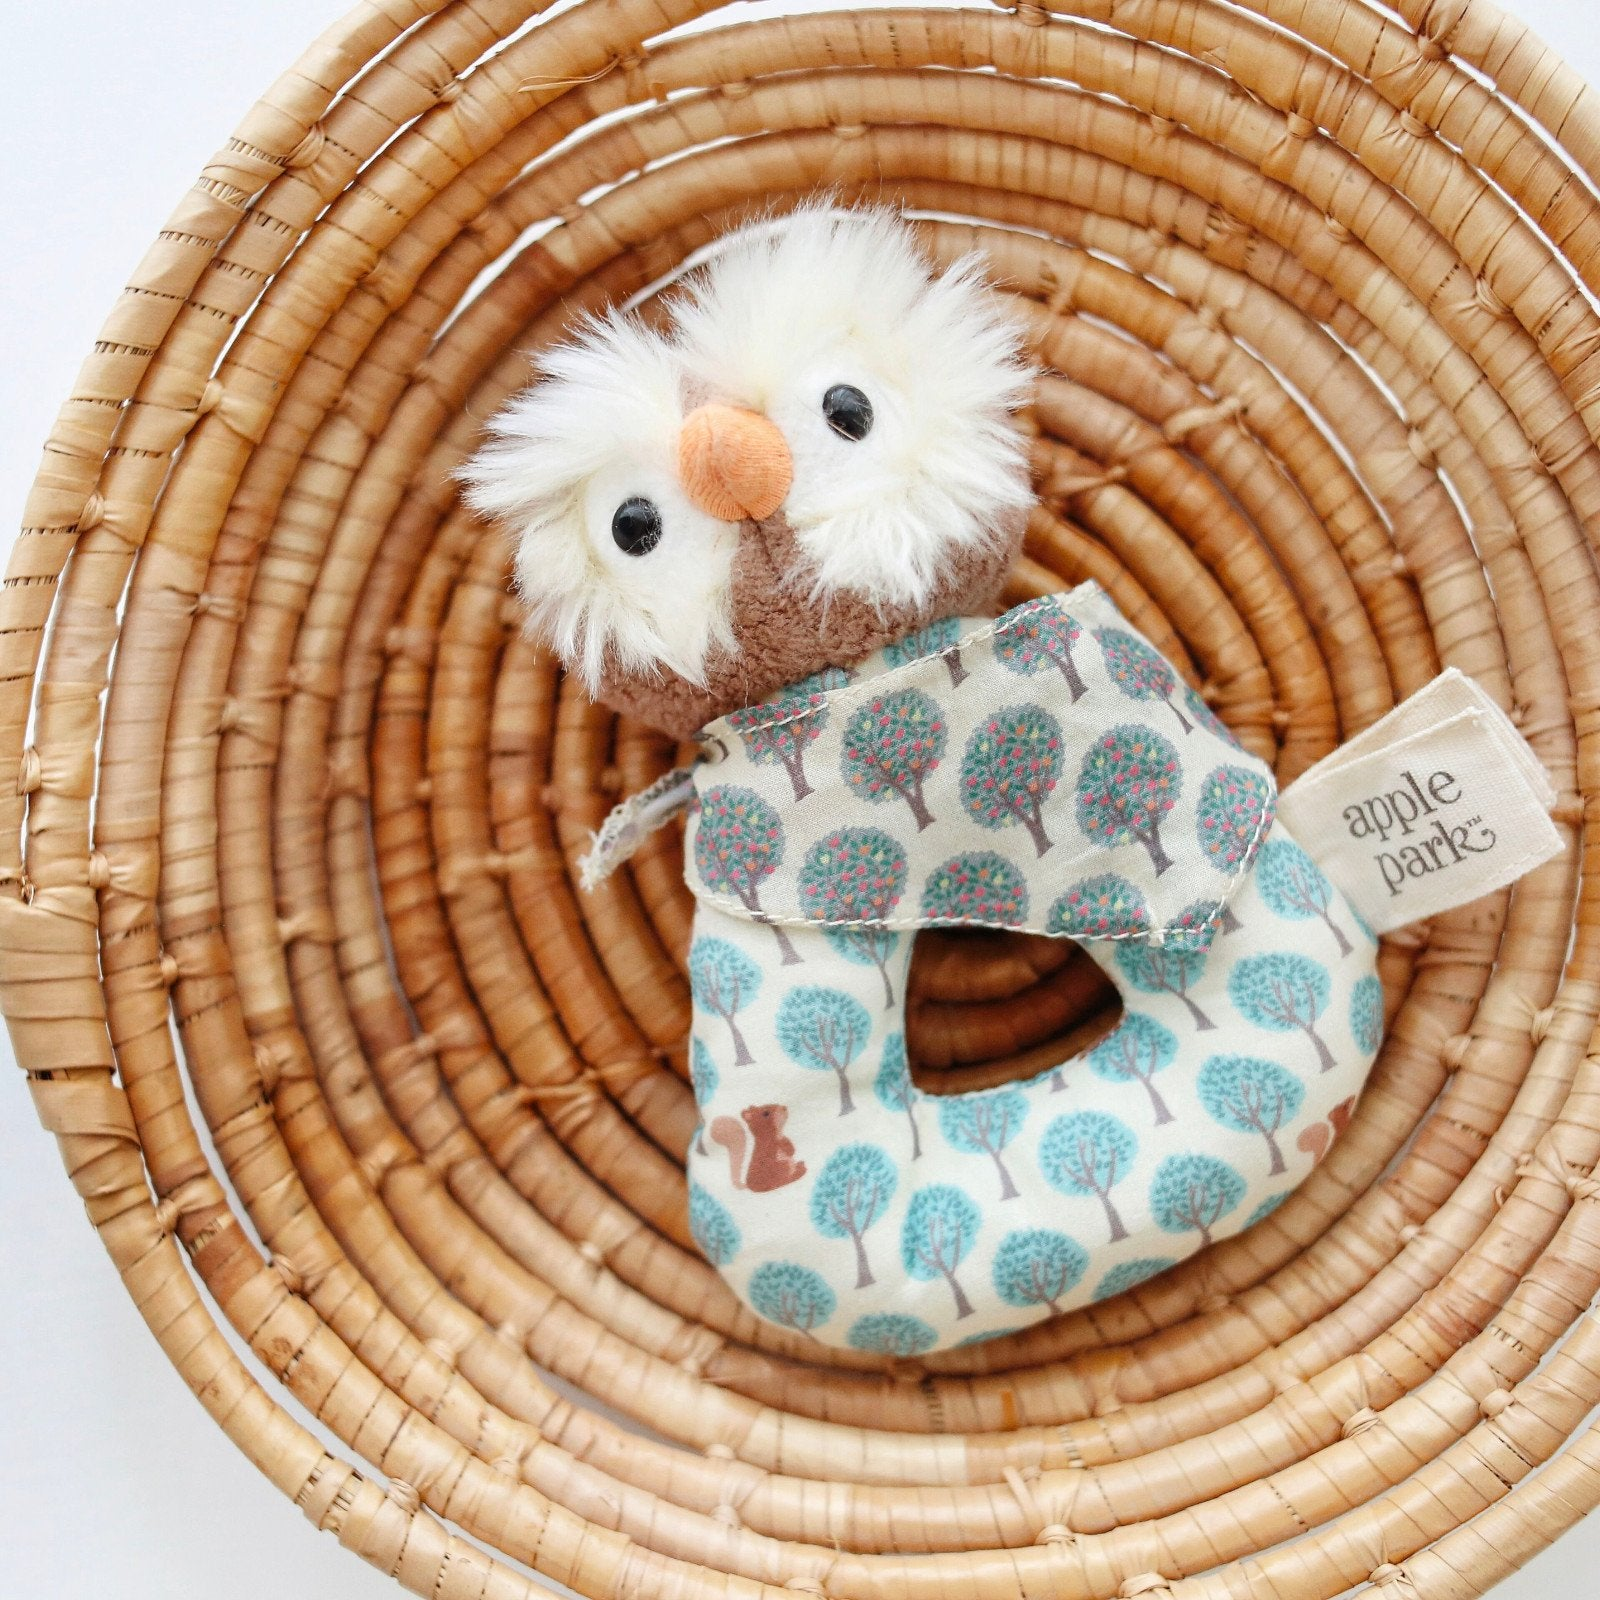 Apple Park Organic Baby Rattle Apple Park Organic Rattles at Little Earth Nest Eco Shop